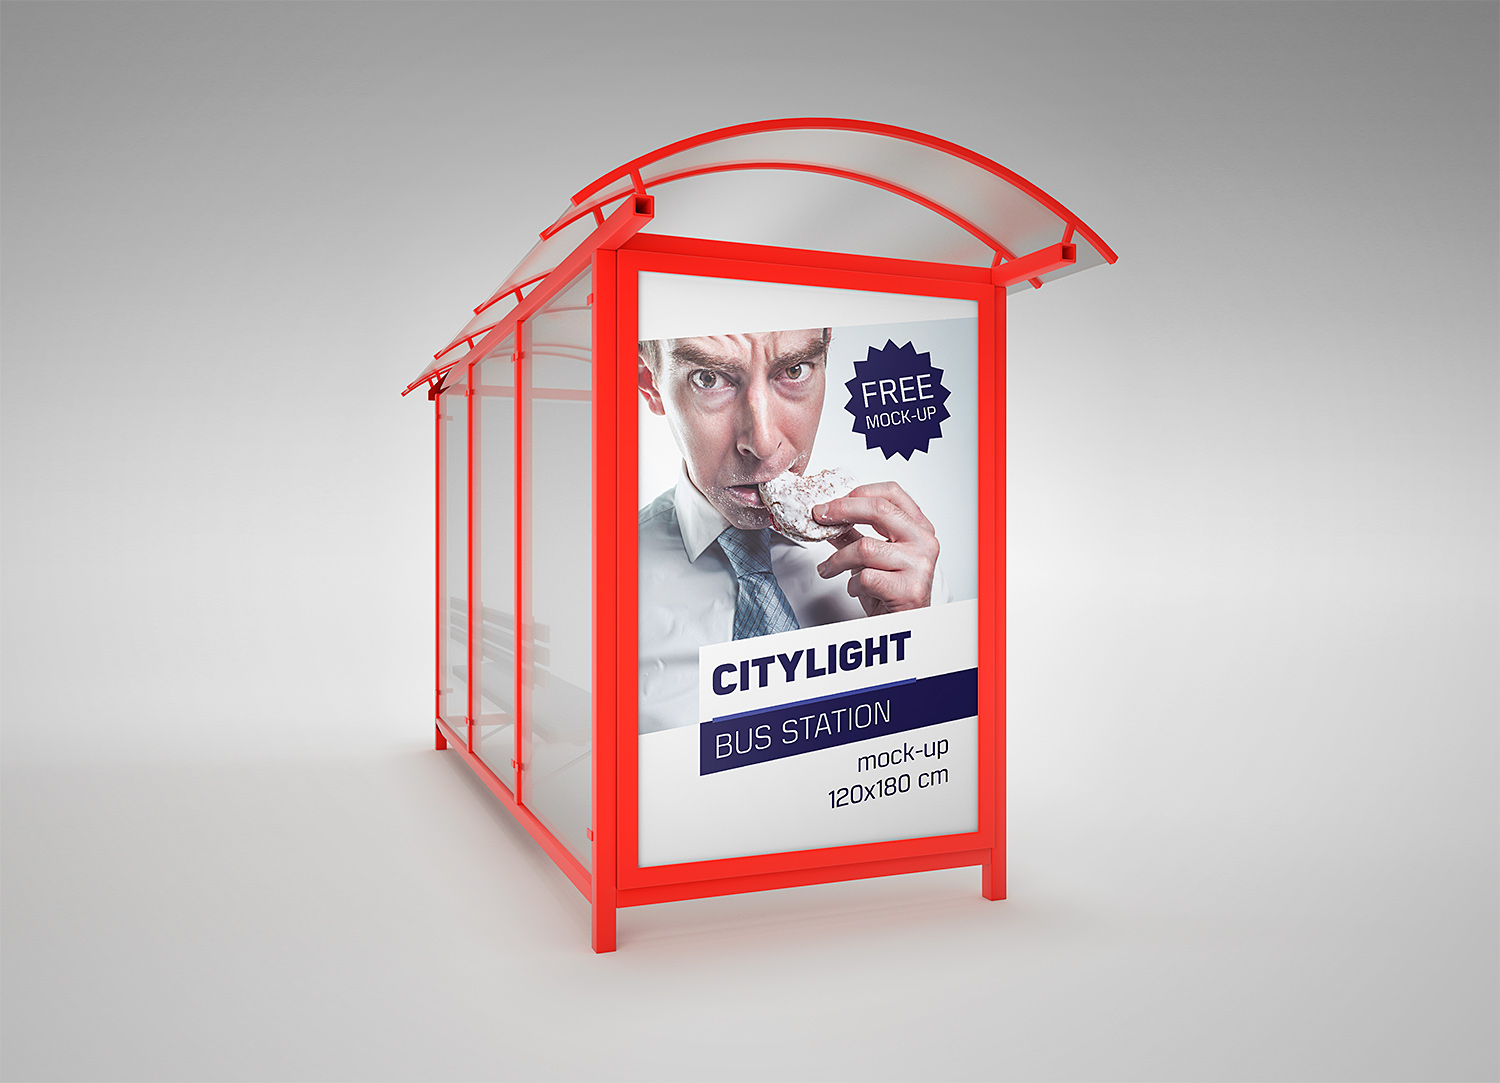 Bus-Stop-City-Light-Free-Mockup-03